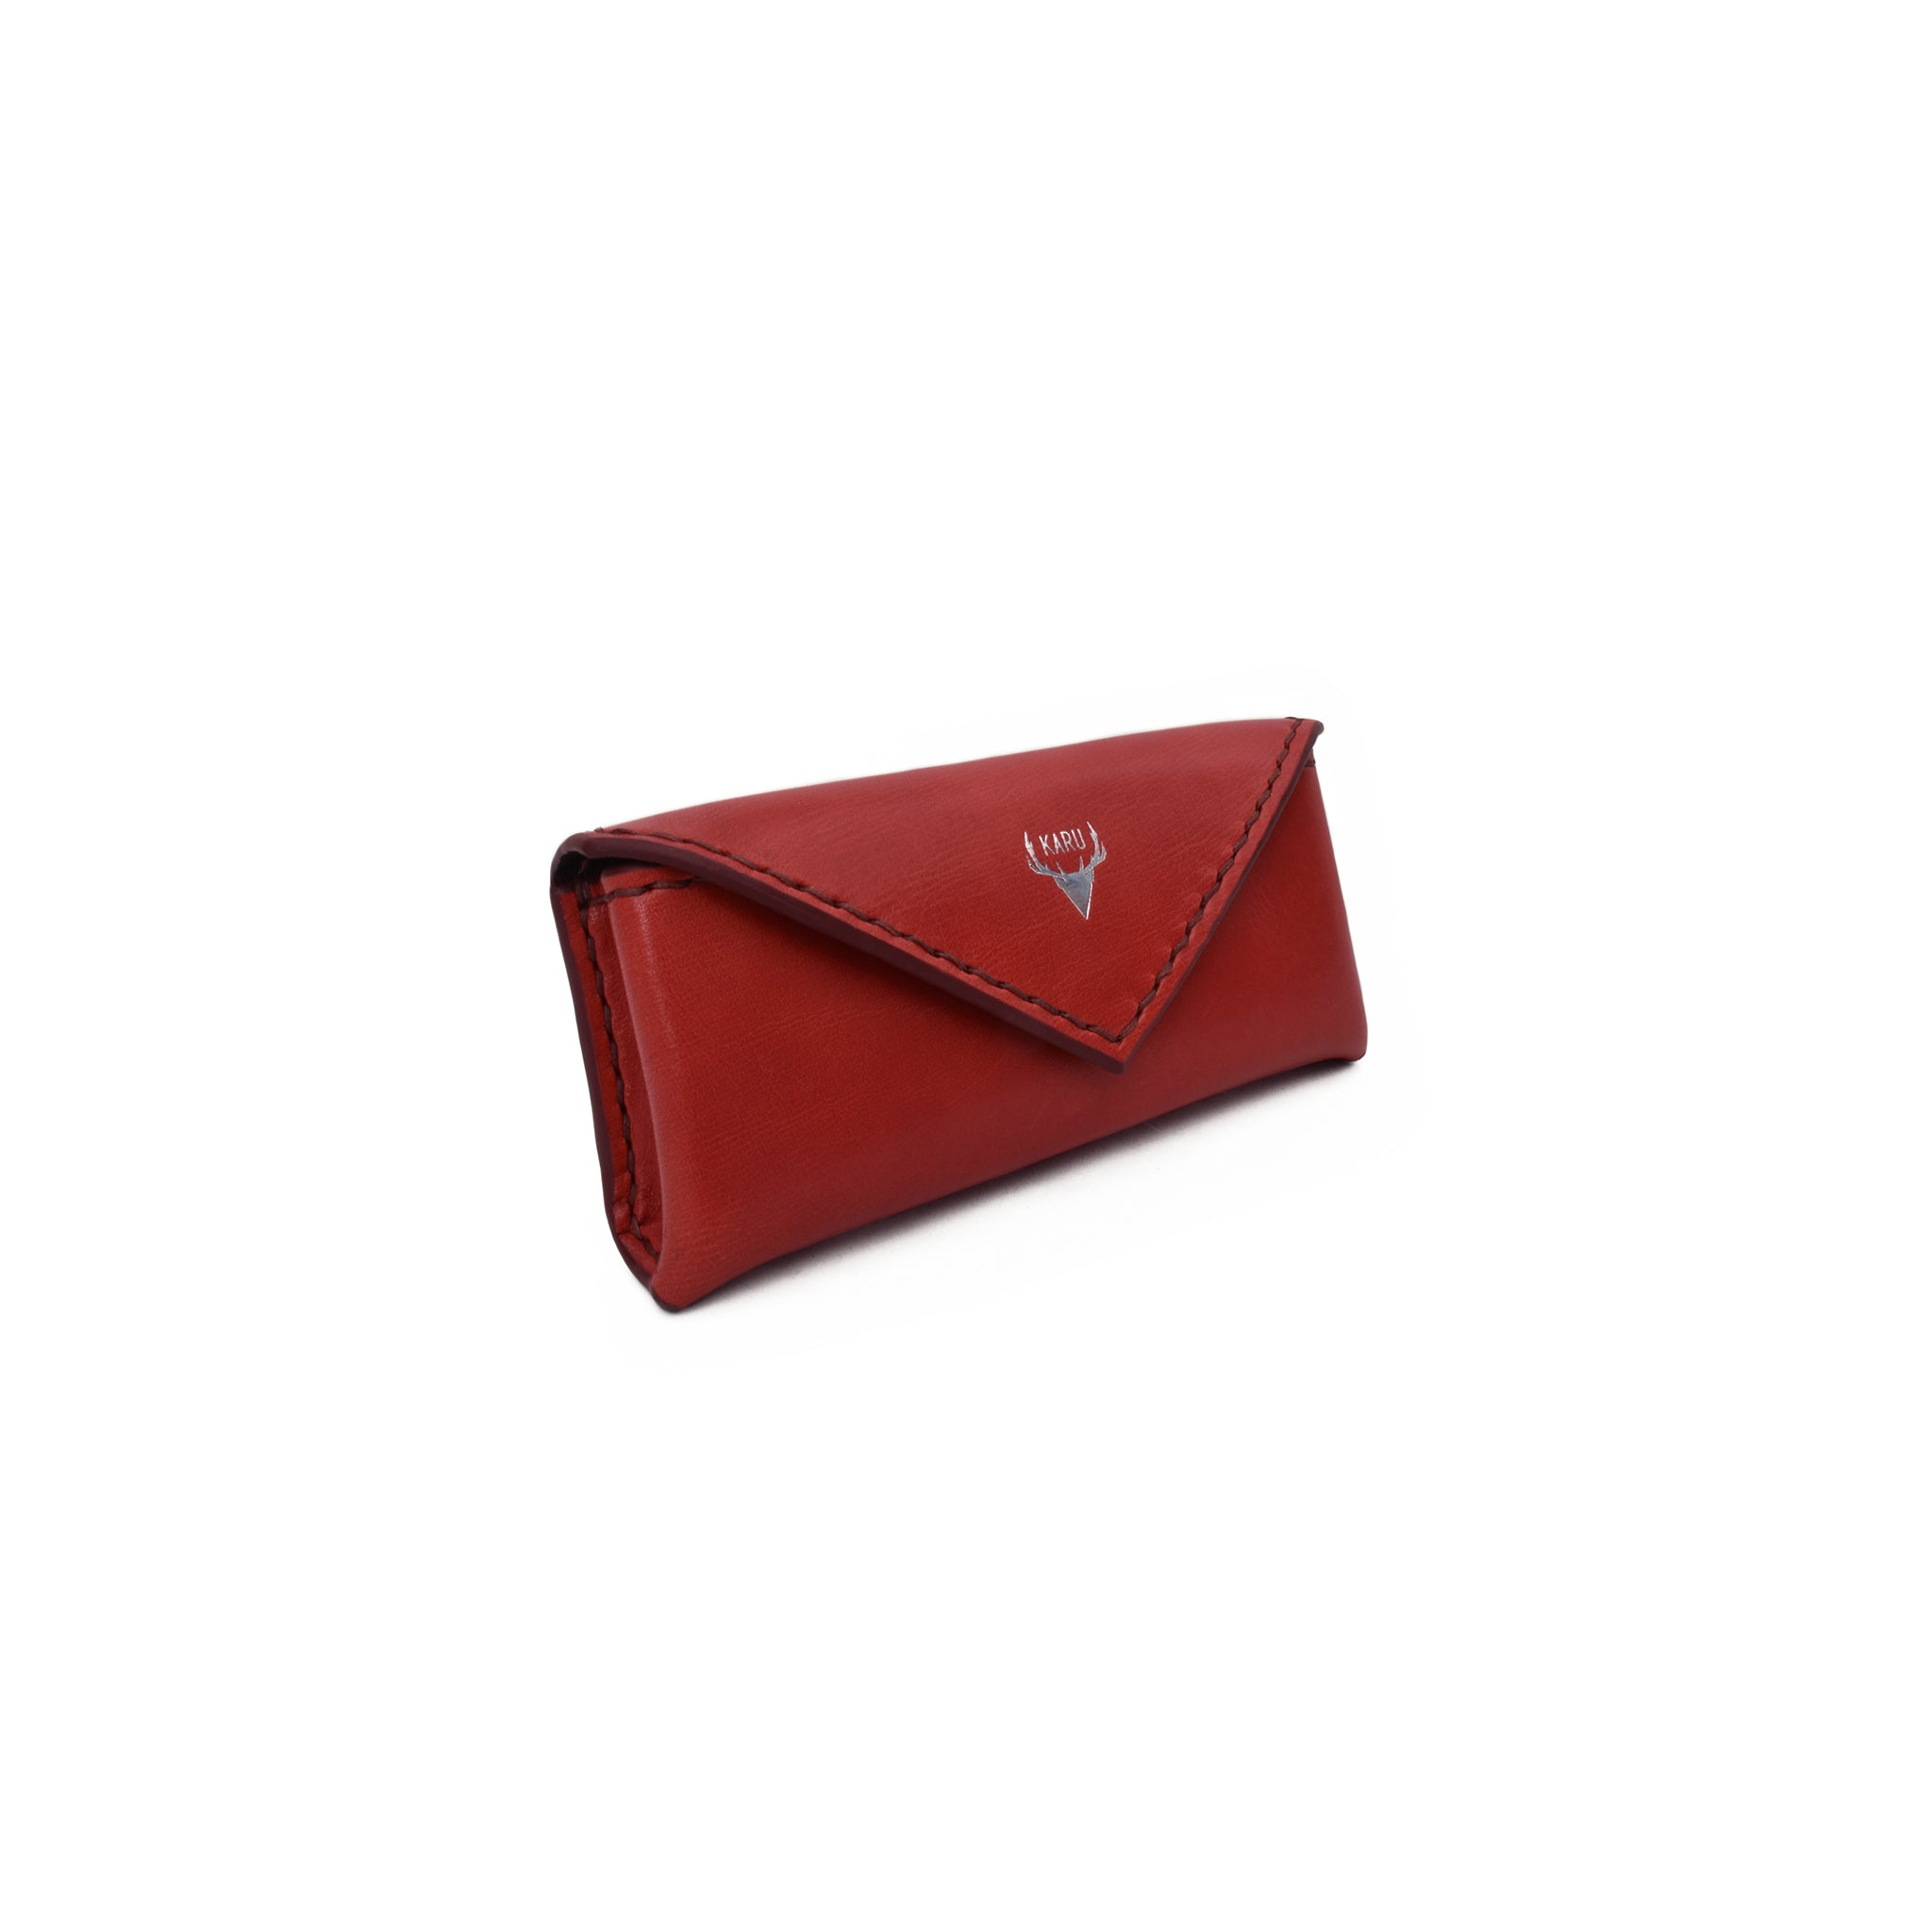 Sunglass Case | Burgundy